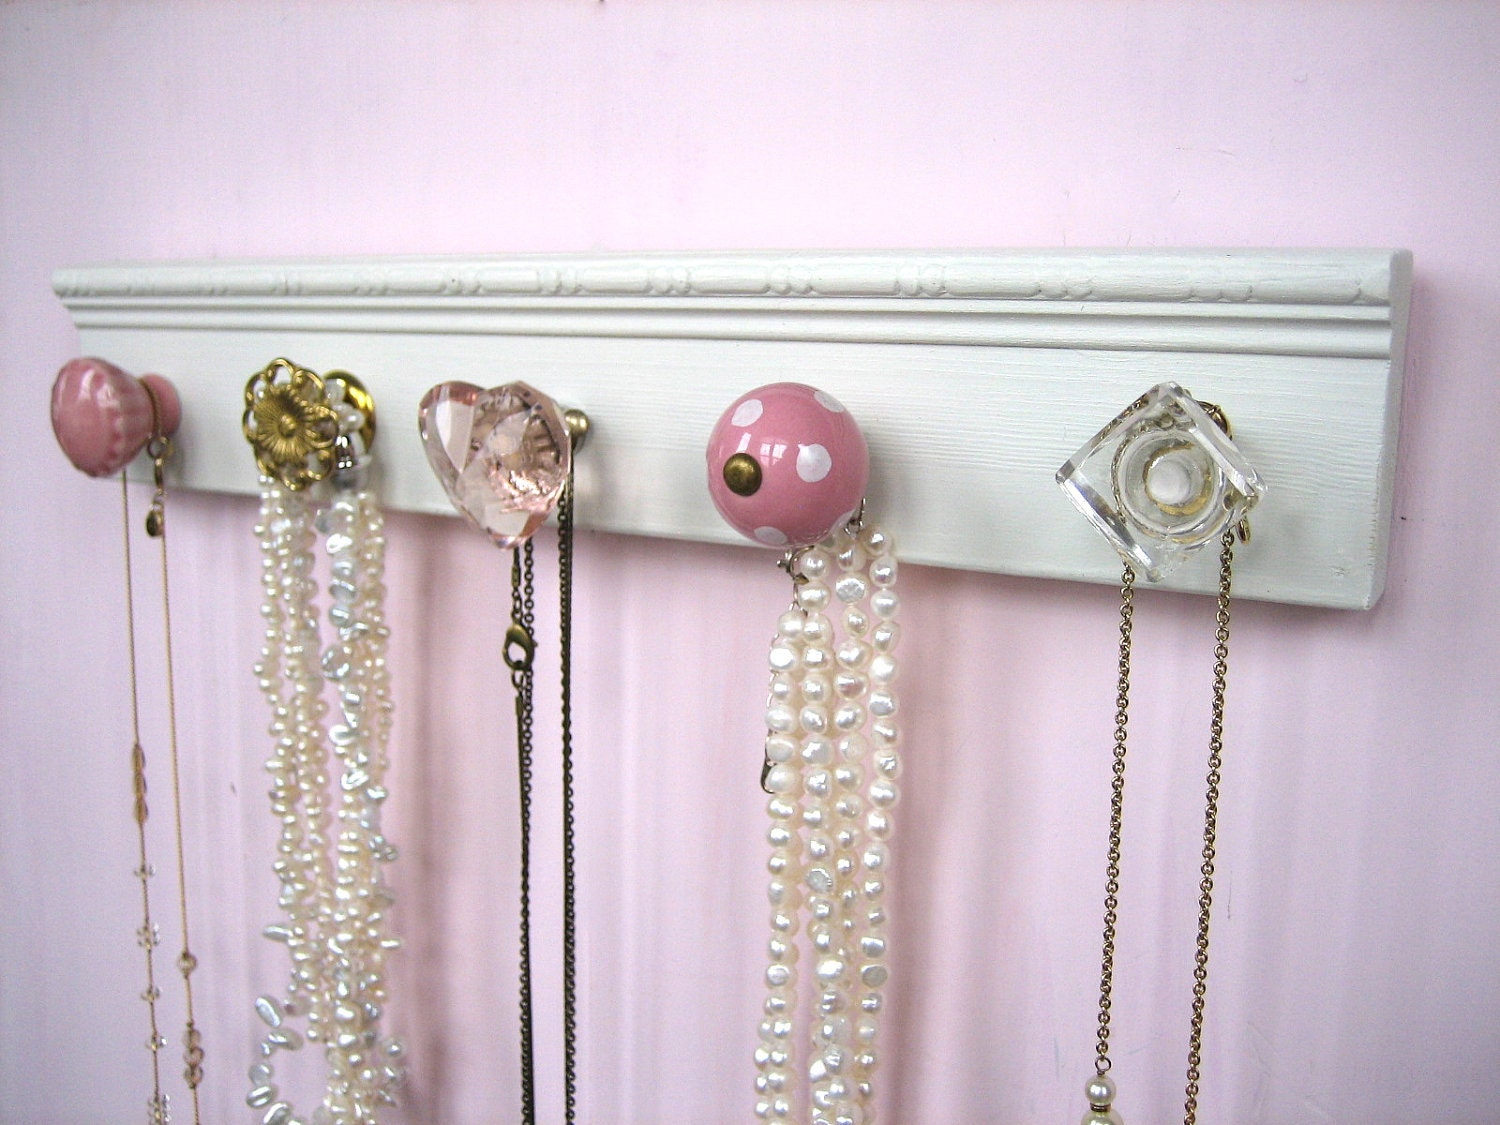 17 Dream Wall Necklace Hanger Photo Tierra Este 60723